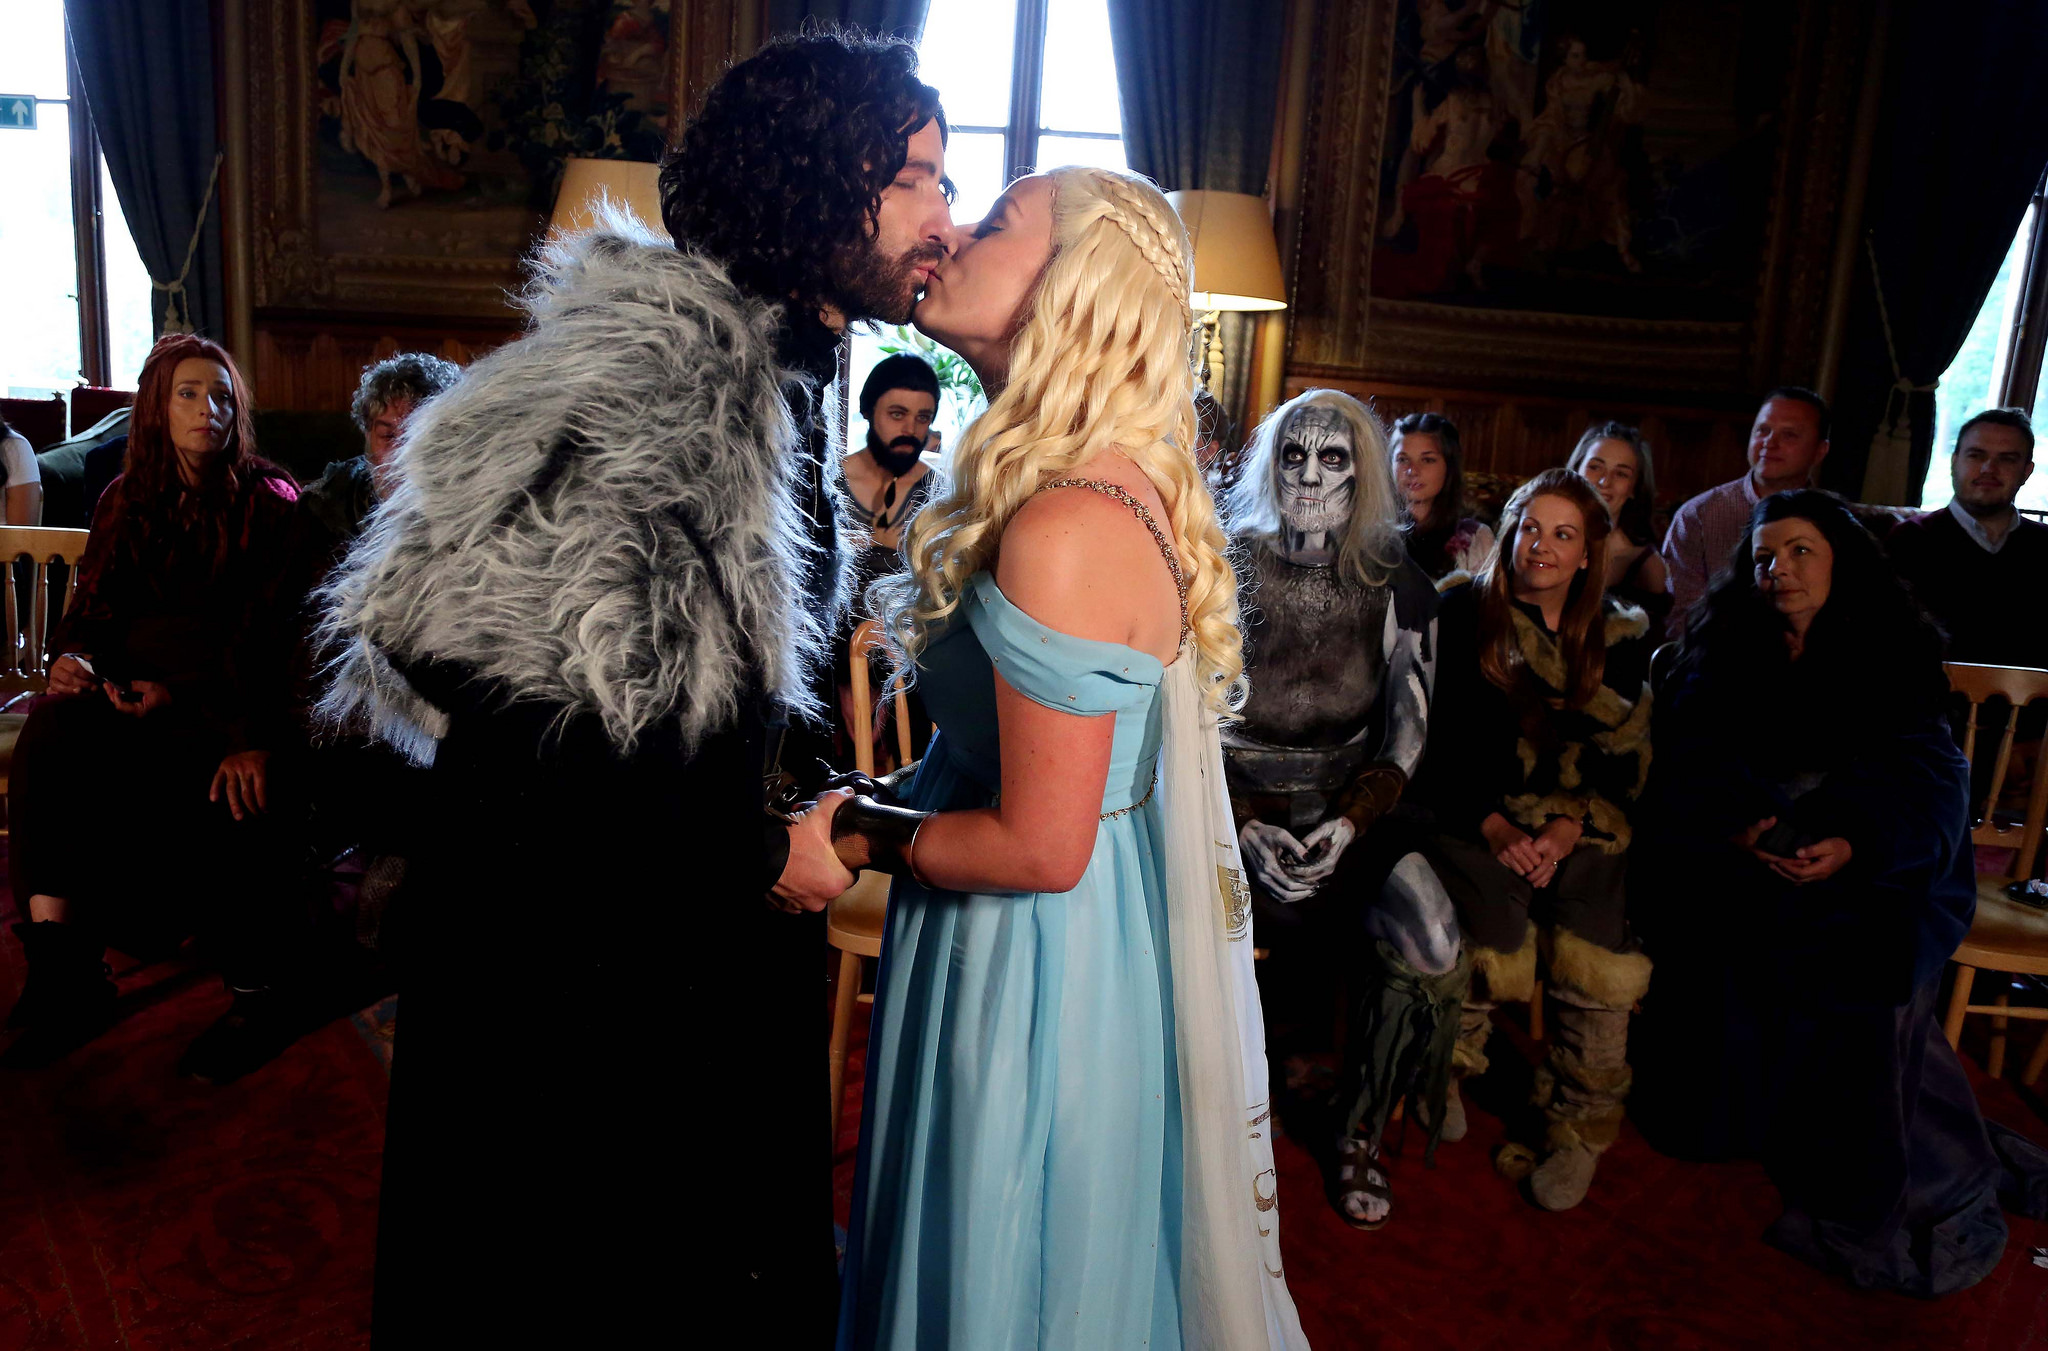 Game of thrones wedding ceremony vows